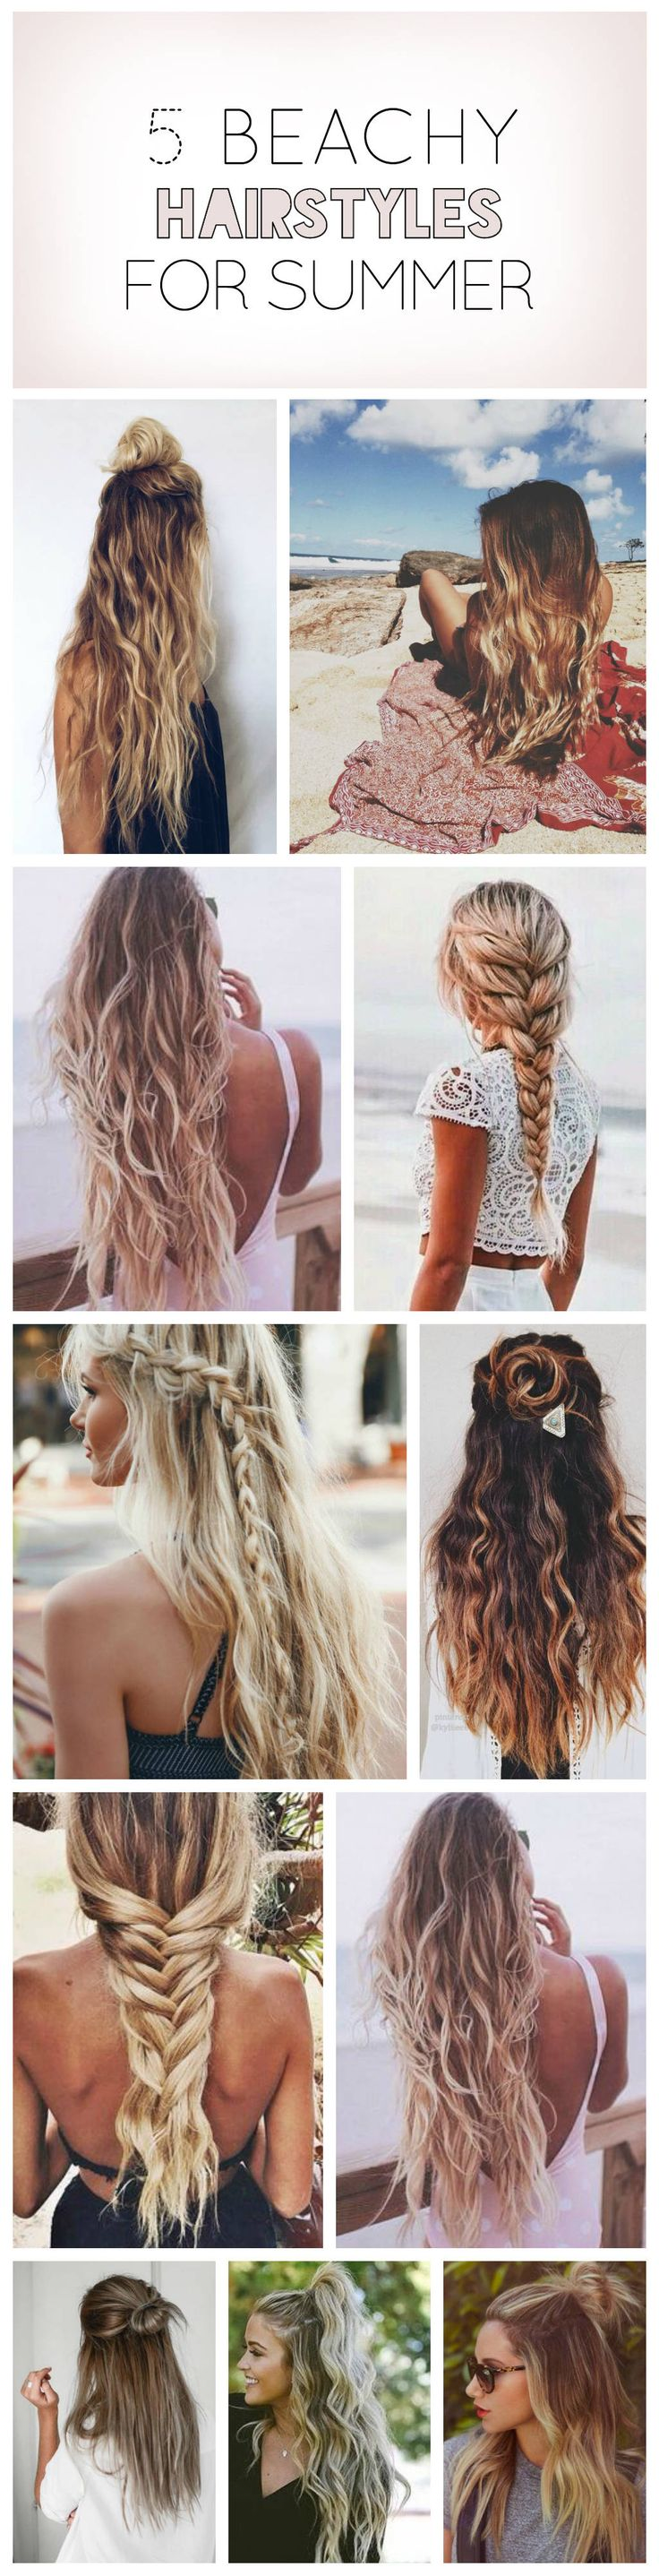 Pinterest Hairstyles Alluring 347 Best Hair Tutorials & Ideas Images On Pinterest  Hairstyle